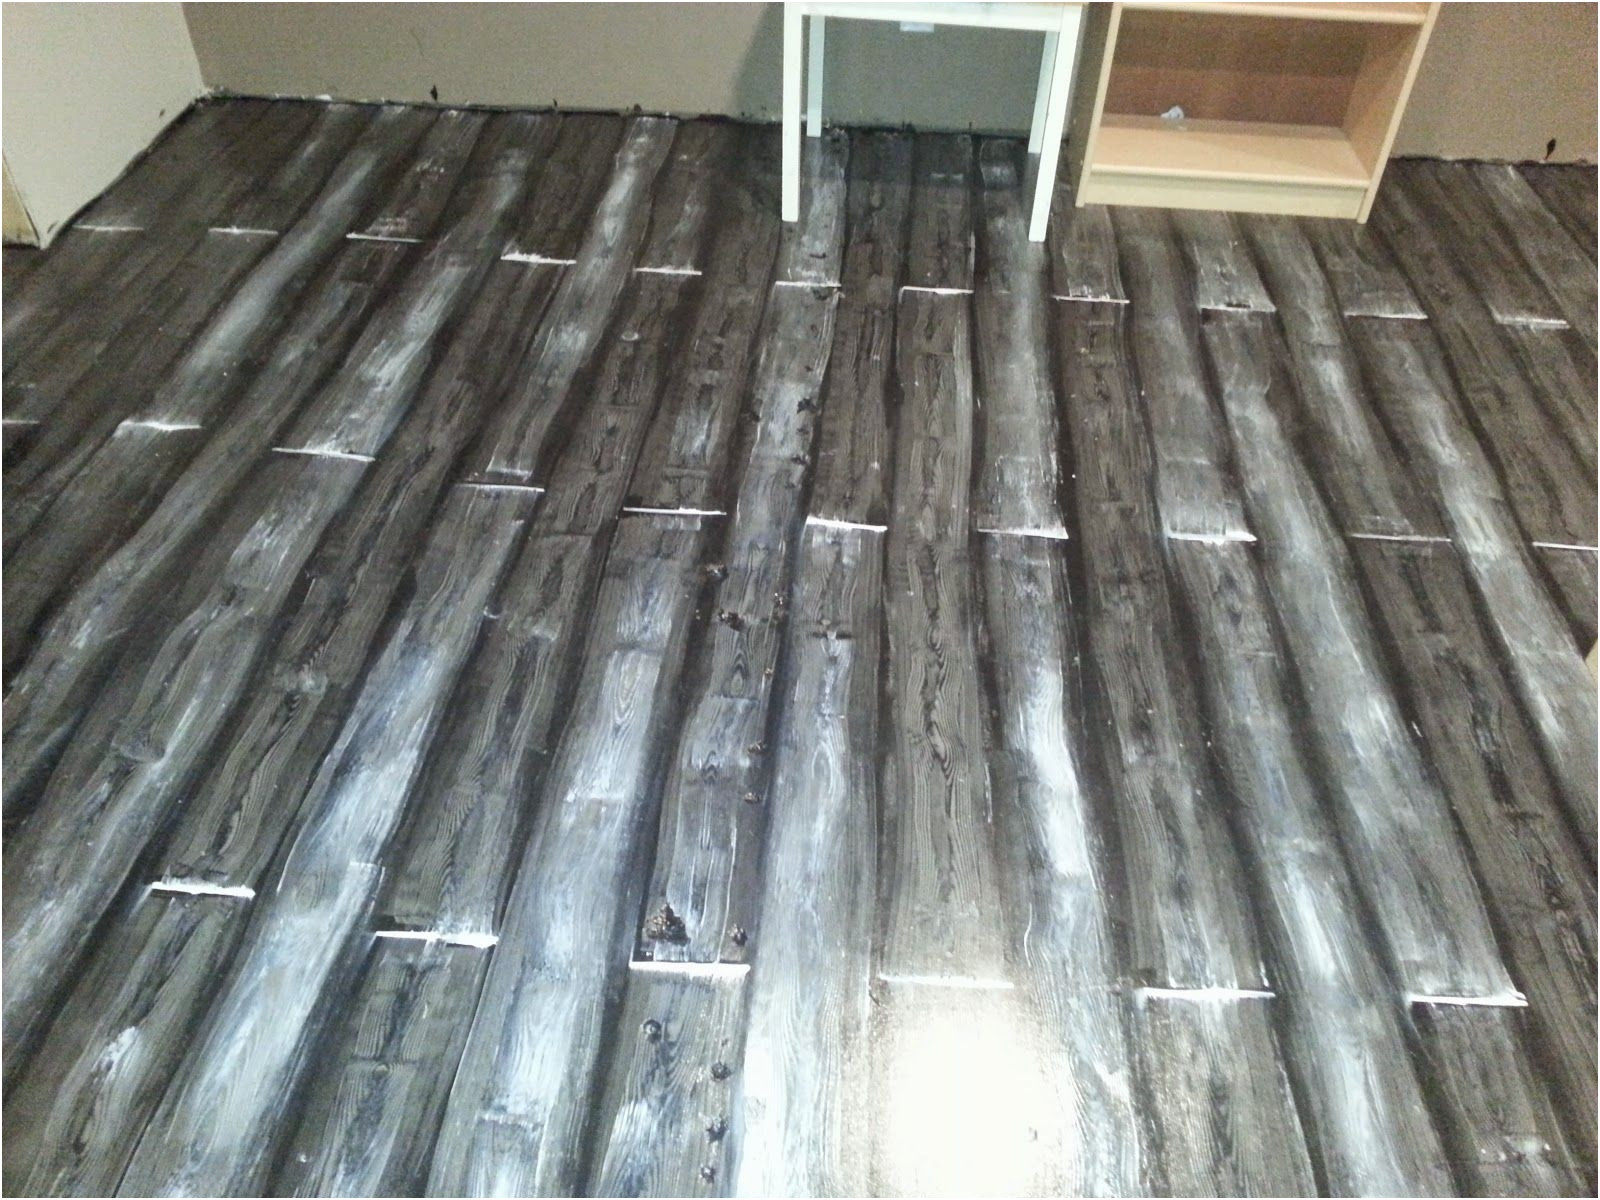 installing click lock hardwood flooring on concrete of hardwood flooring over ceramic tile stock 3 4 x 4 3 4 solid golden pertaining to hardwood flooring over ceramic tile collection best how to put hardwood floor concrete of hardwood flooring